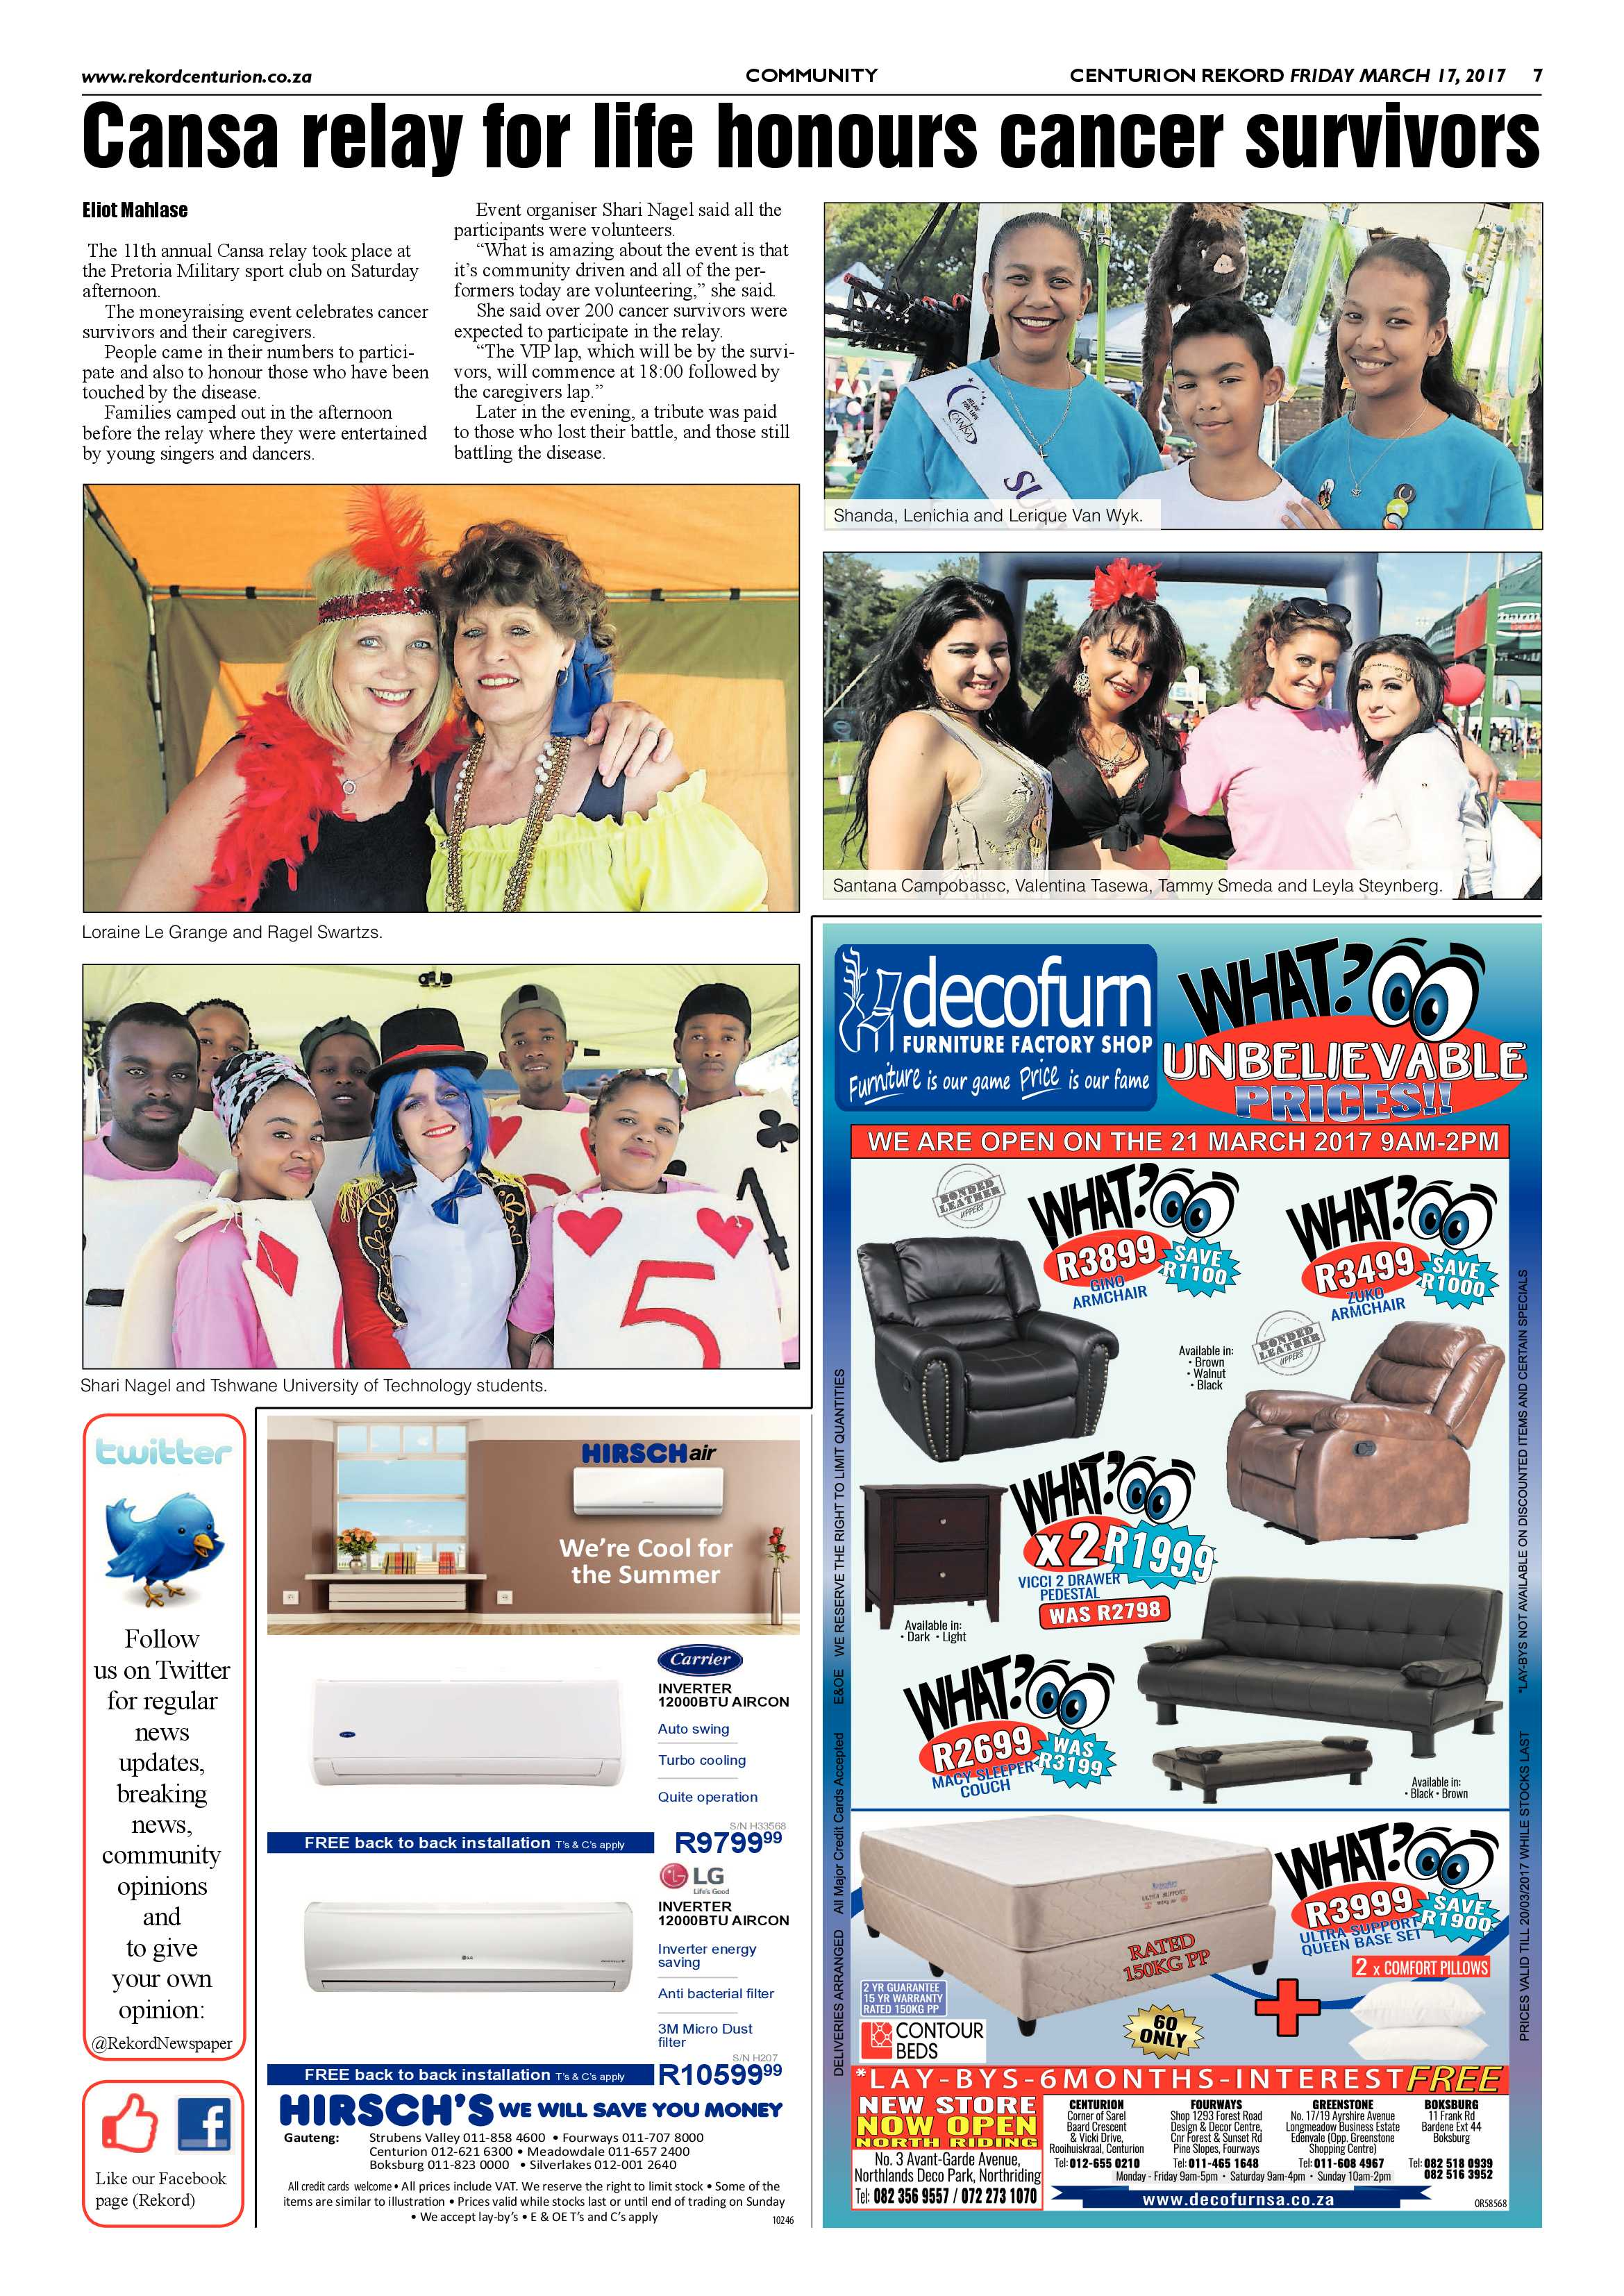 rekord-centurion-17-march-2017-epapers-page-7